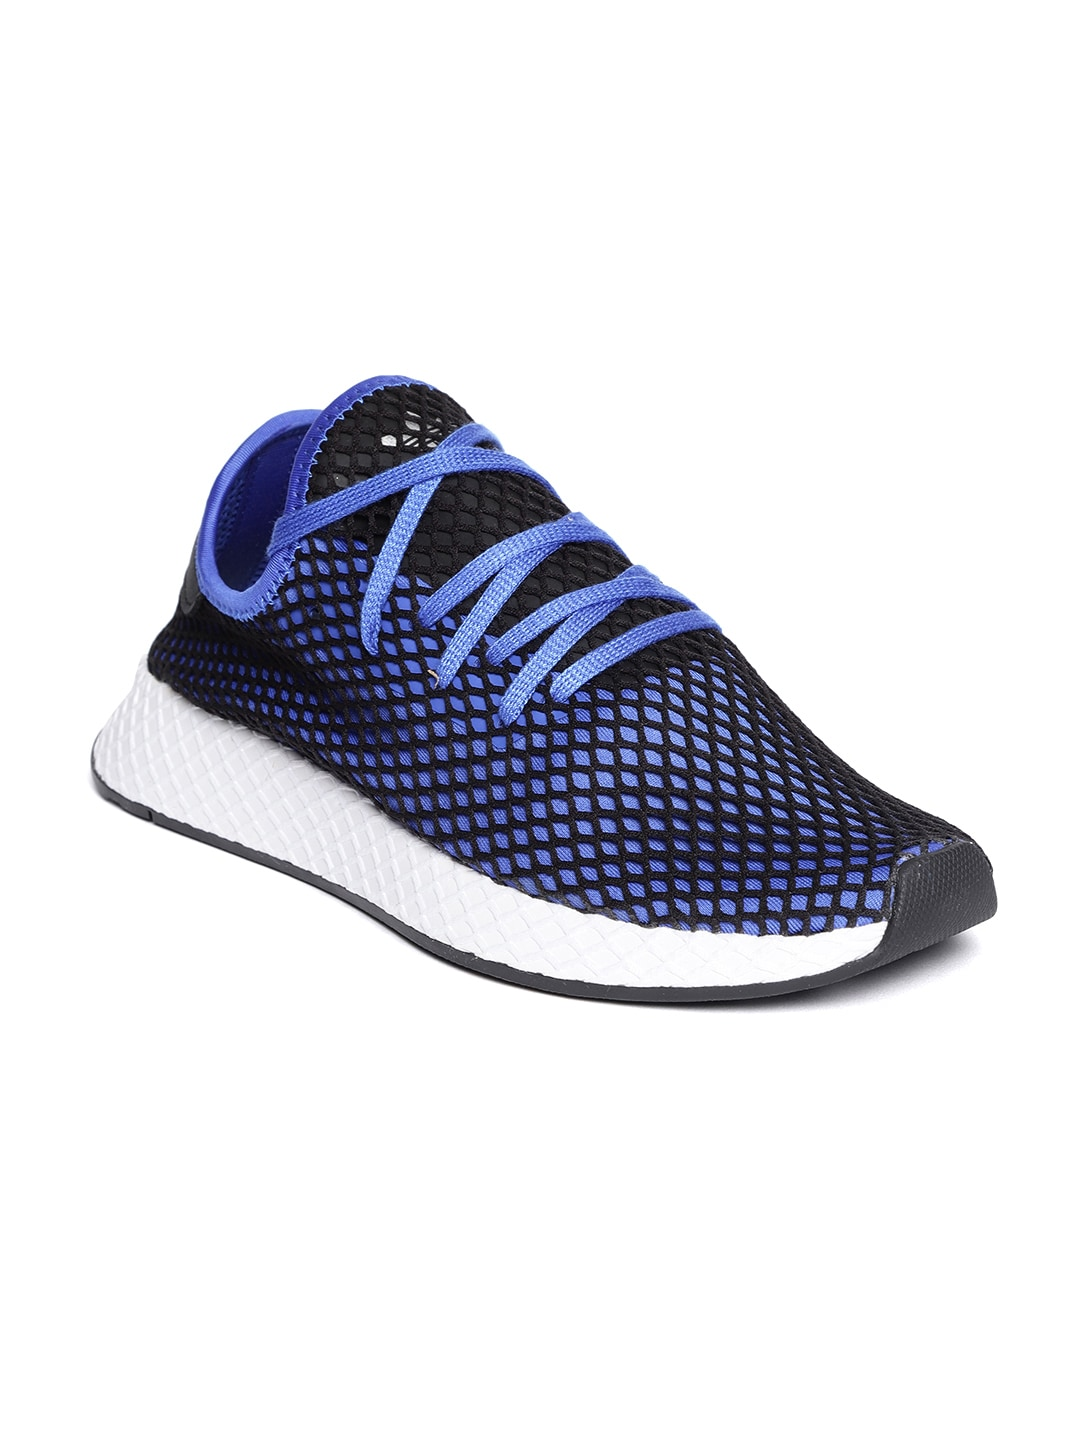 dfe0662fd52a2 Adidas Deerupt - Buy Adidas Deerupt online in India